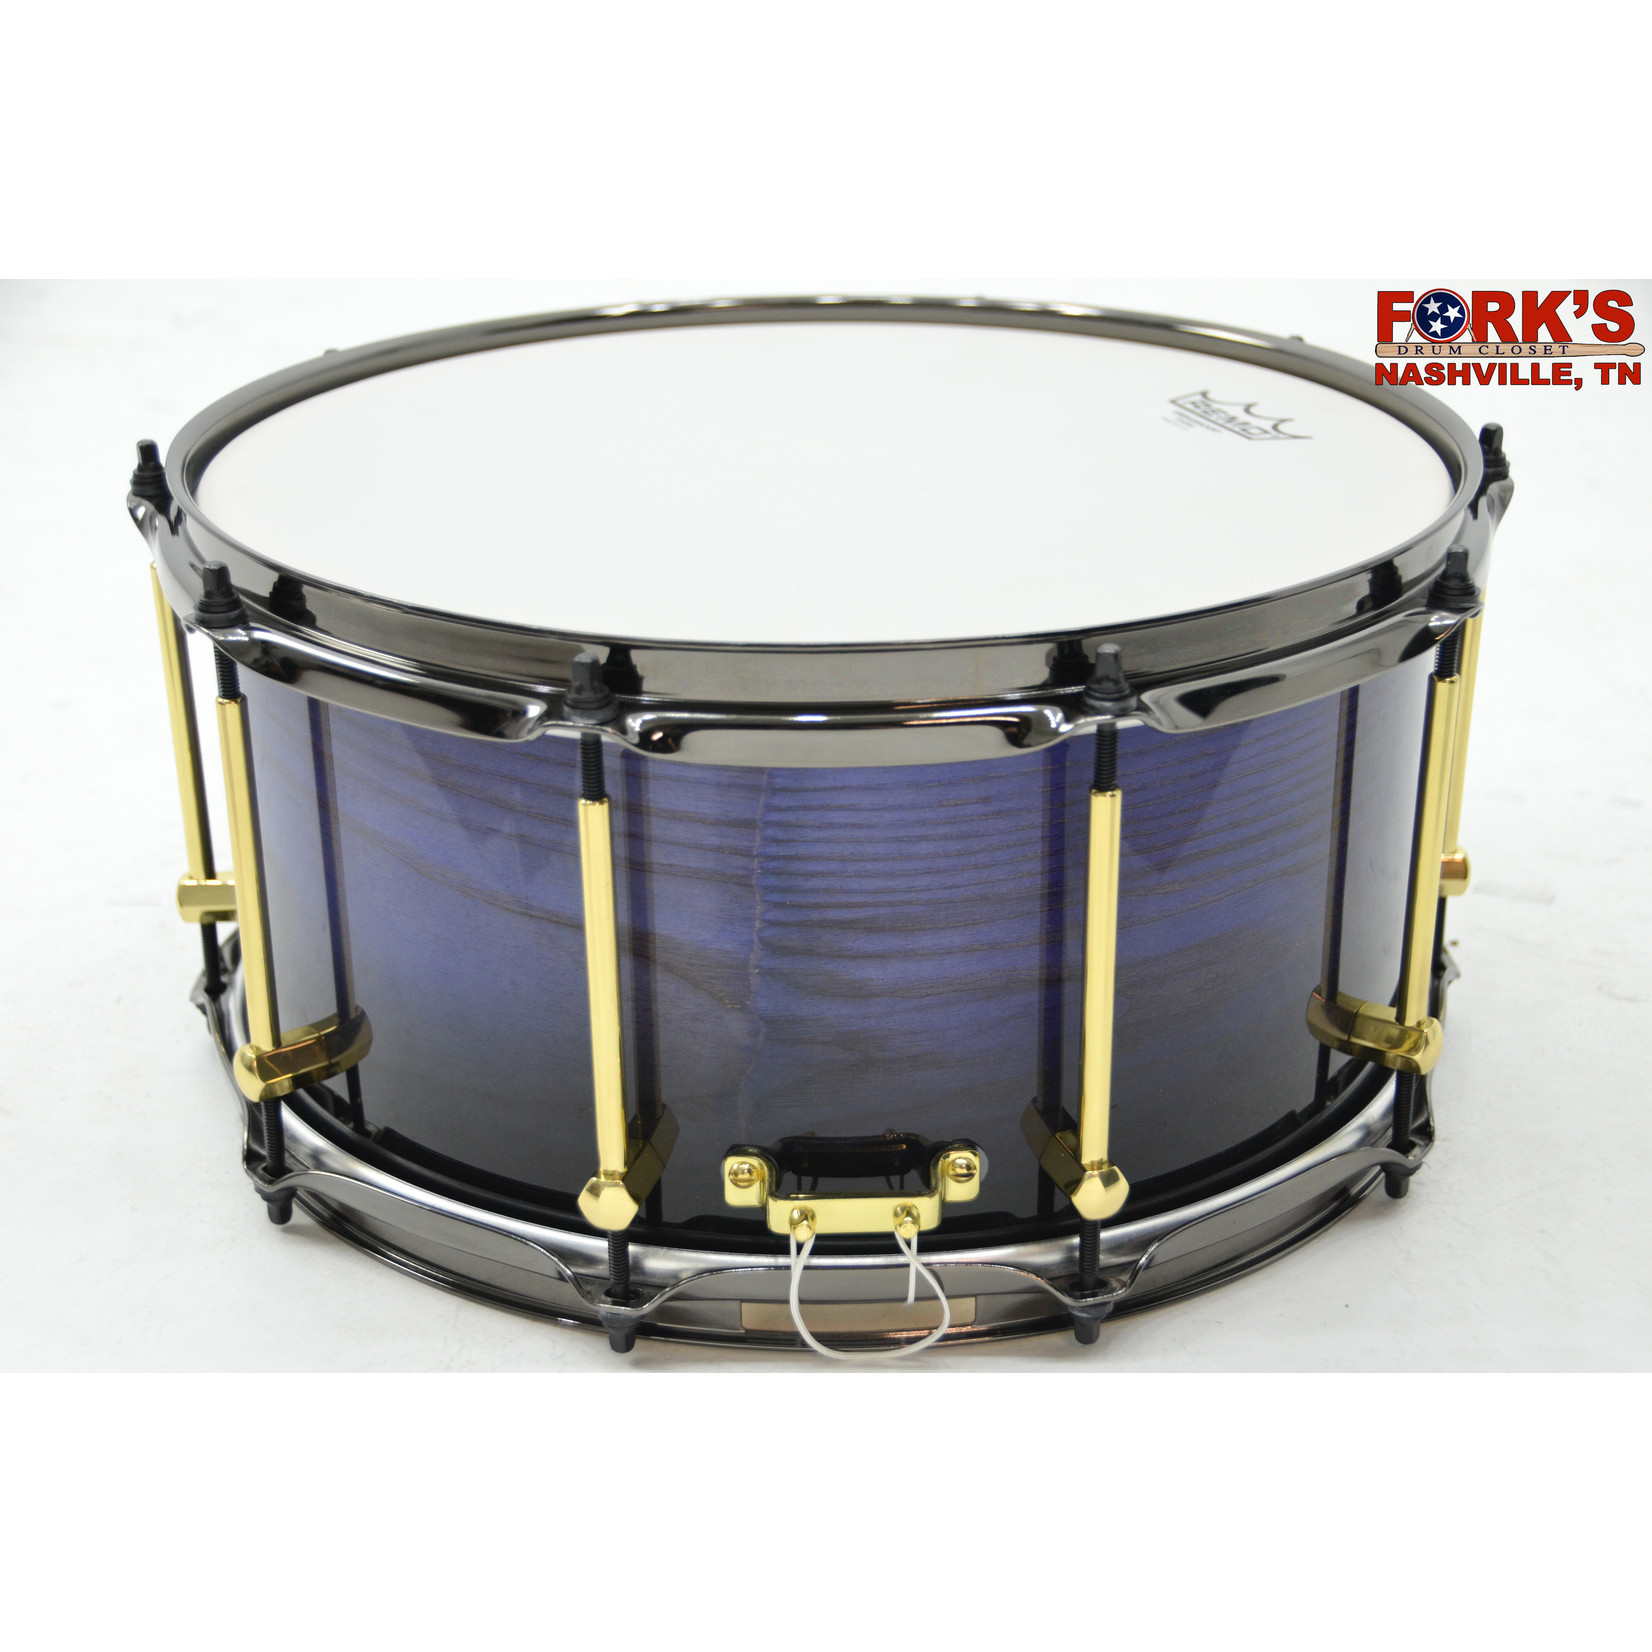 """Noble and Cooley Noble & Cooley Solid Shell Classic 7x14 Ash Snare Drum """"Purple-To-Black Fade"""""""